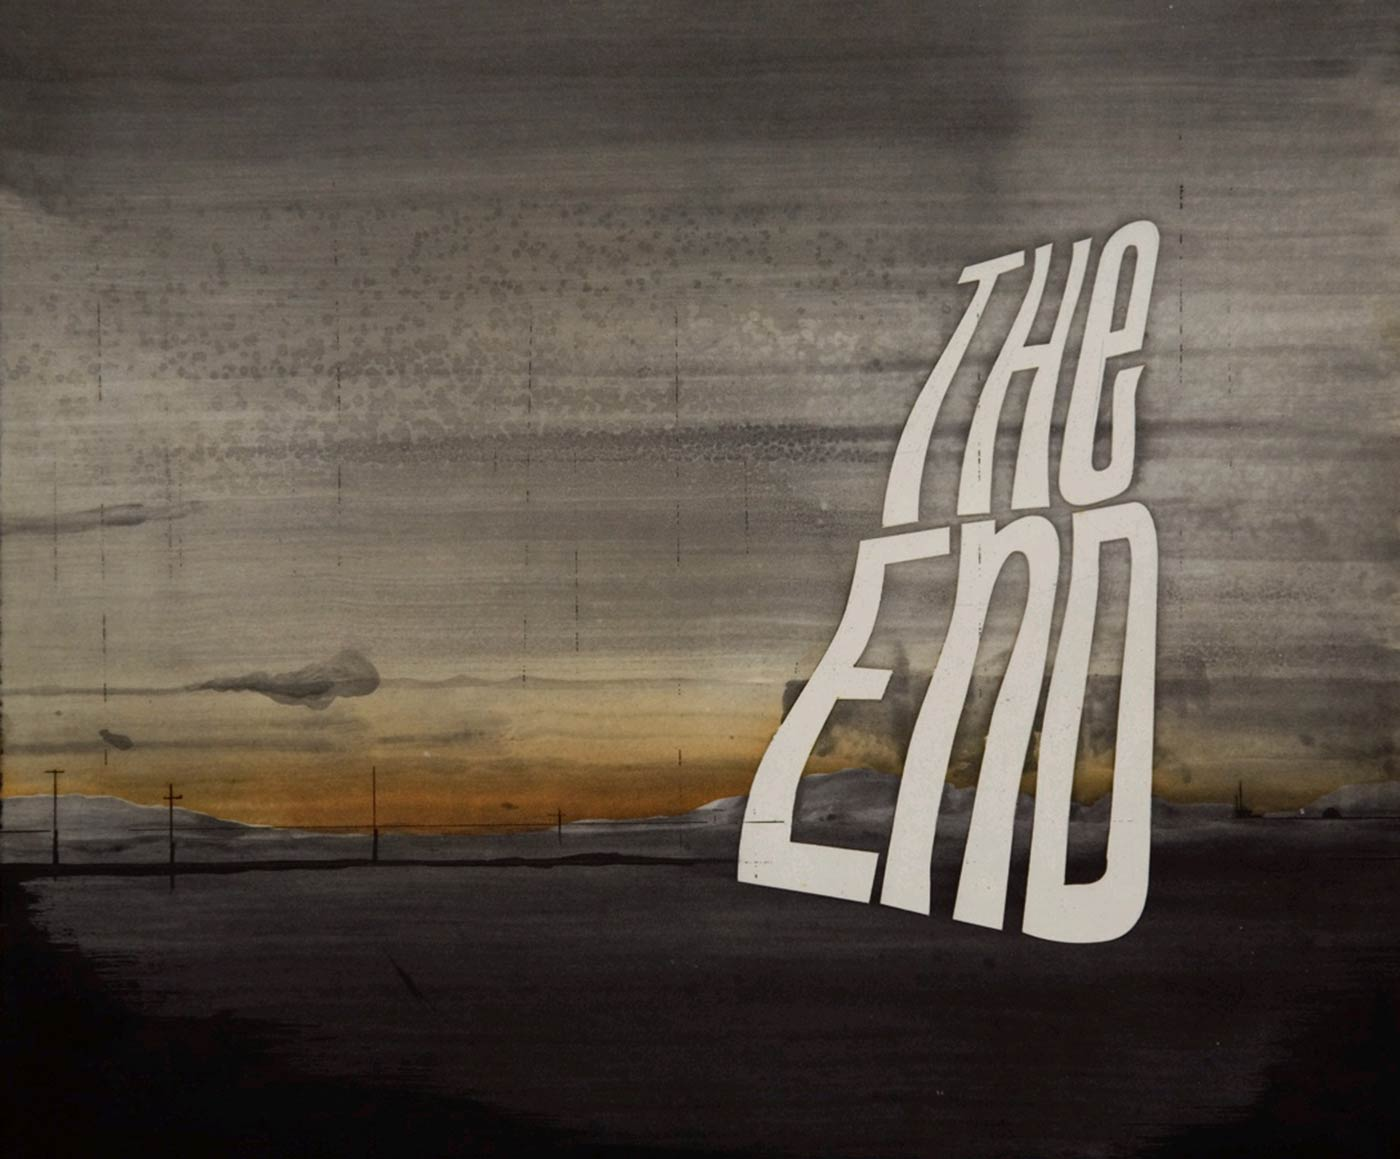 The End III